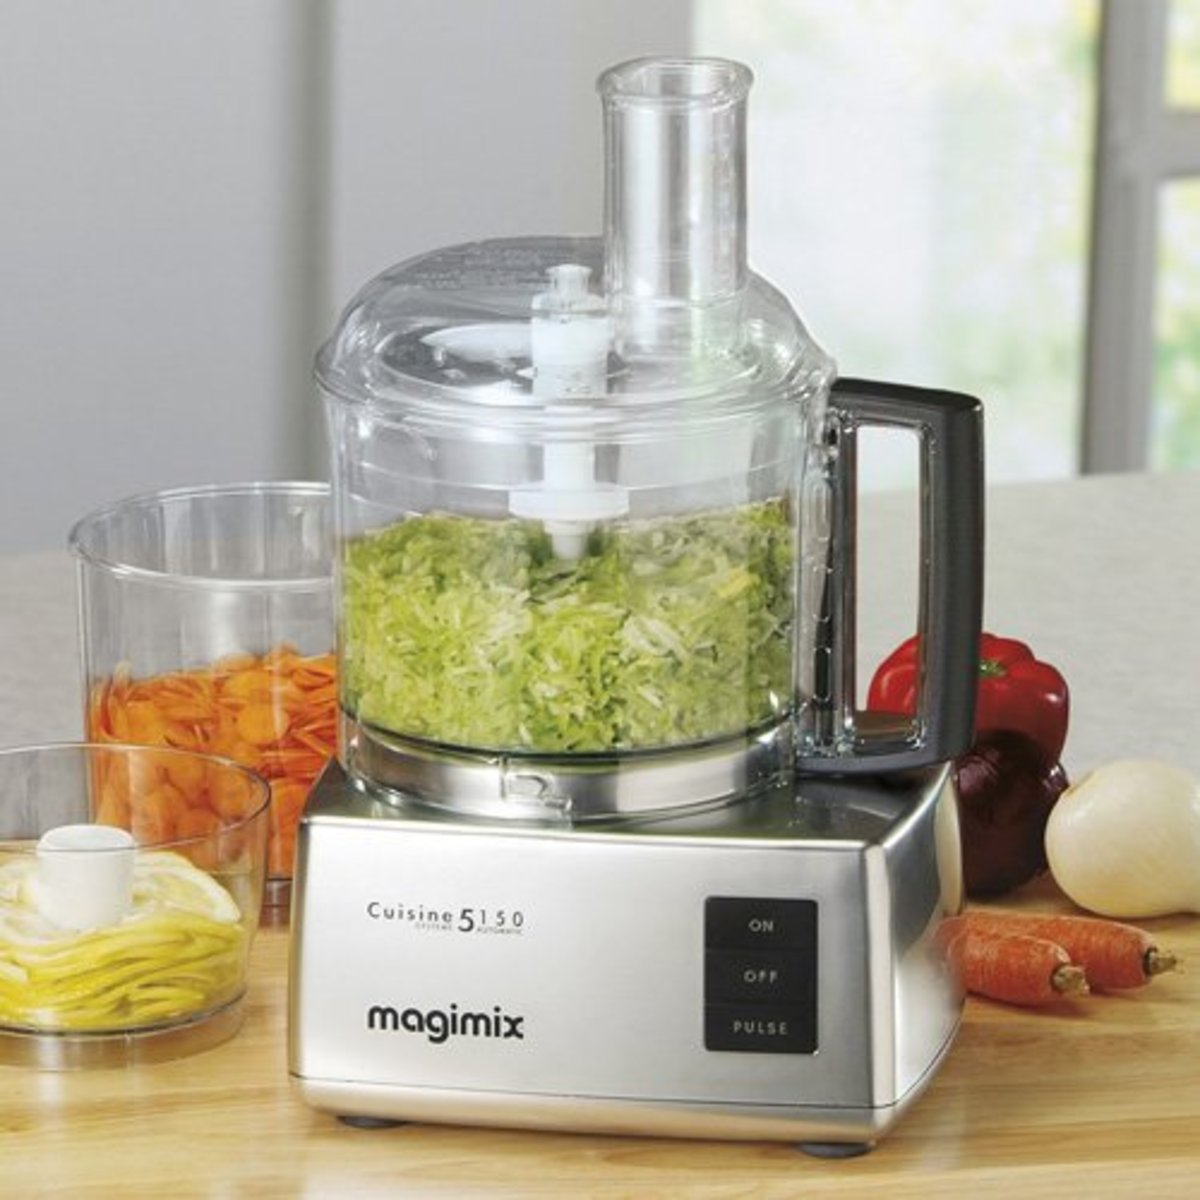 Magimix Cuisine Systeme 5150 food processor in chrome